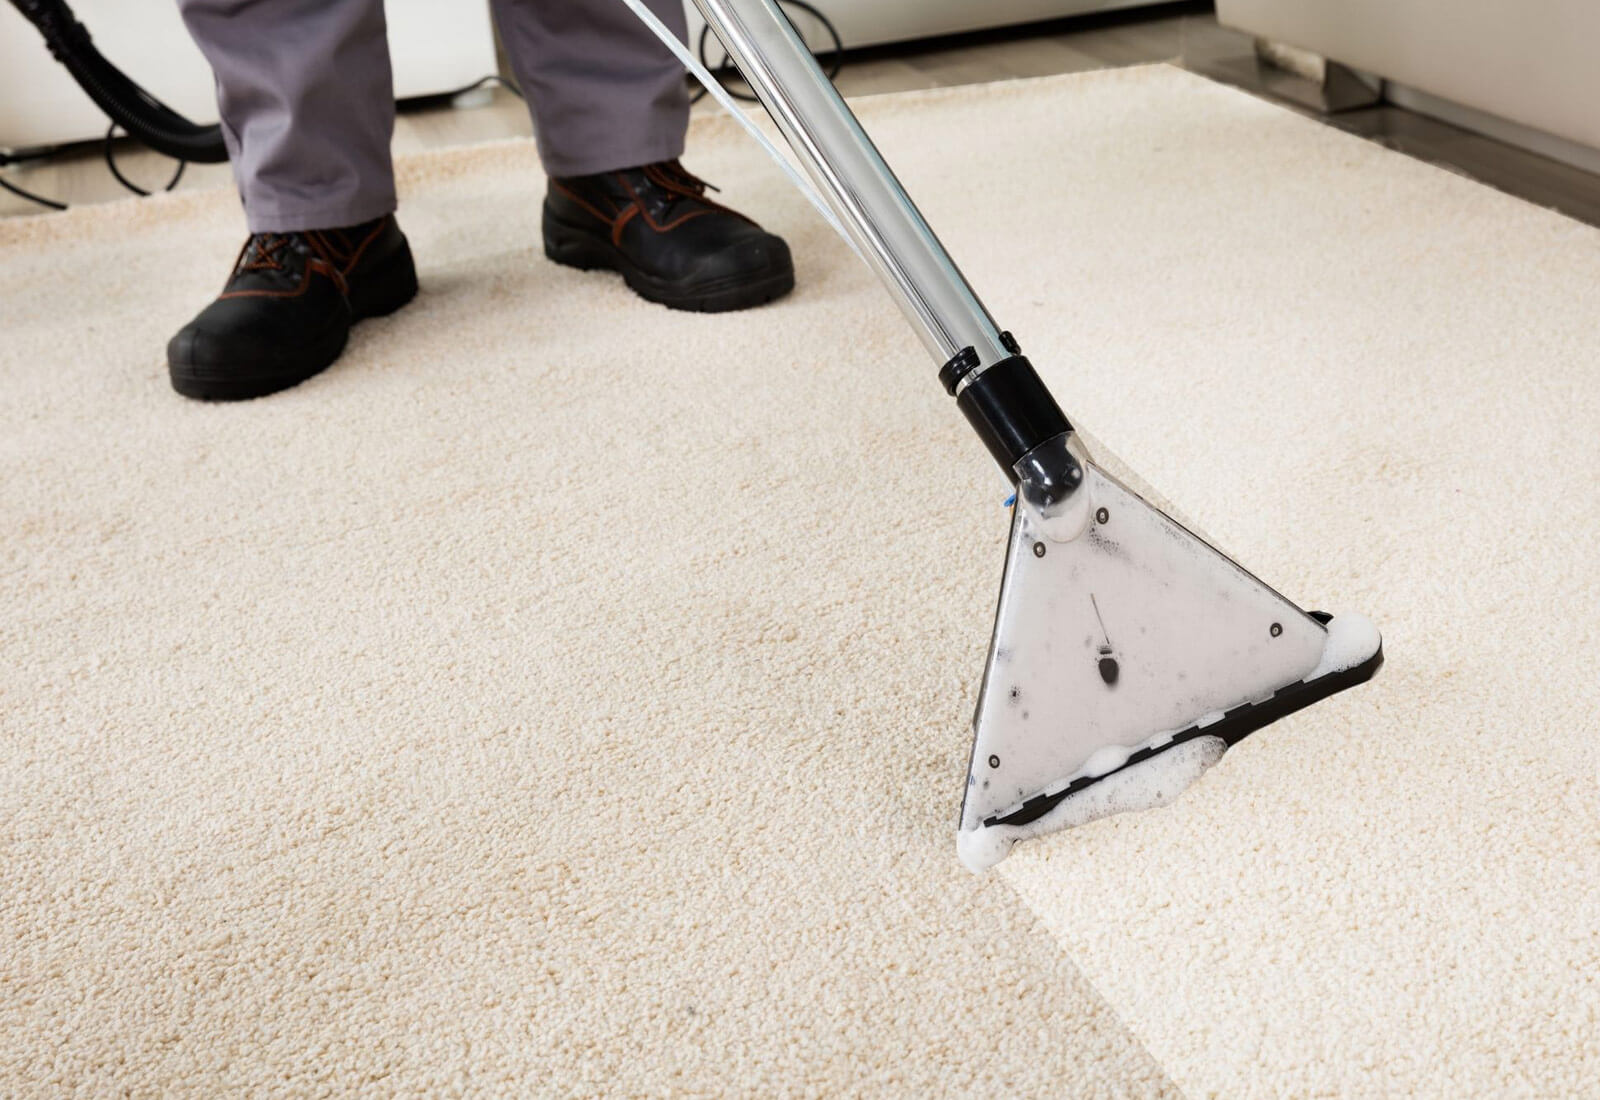 A man steam cleaning the carpet